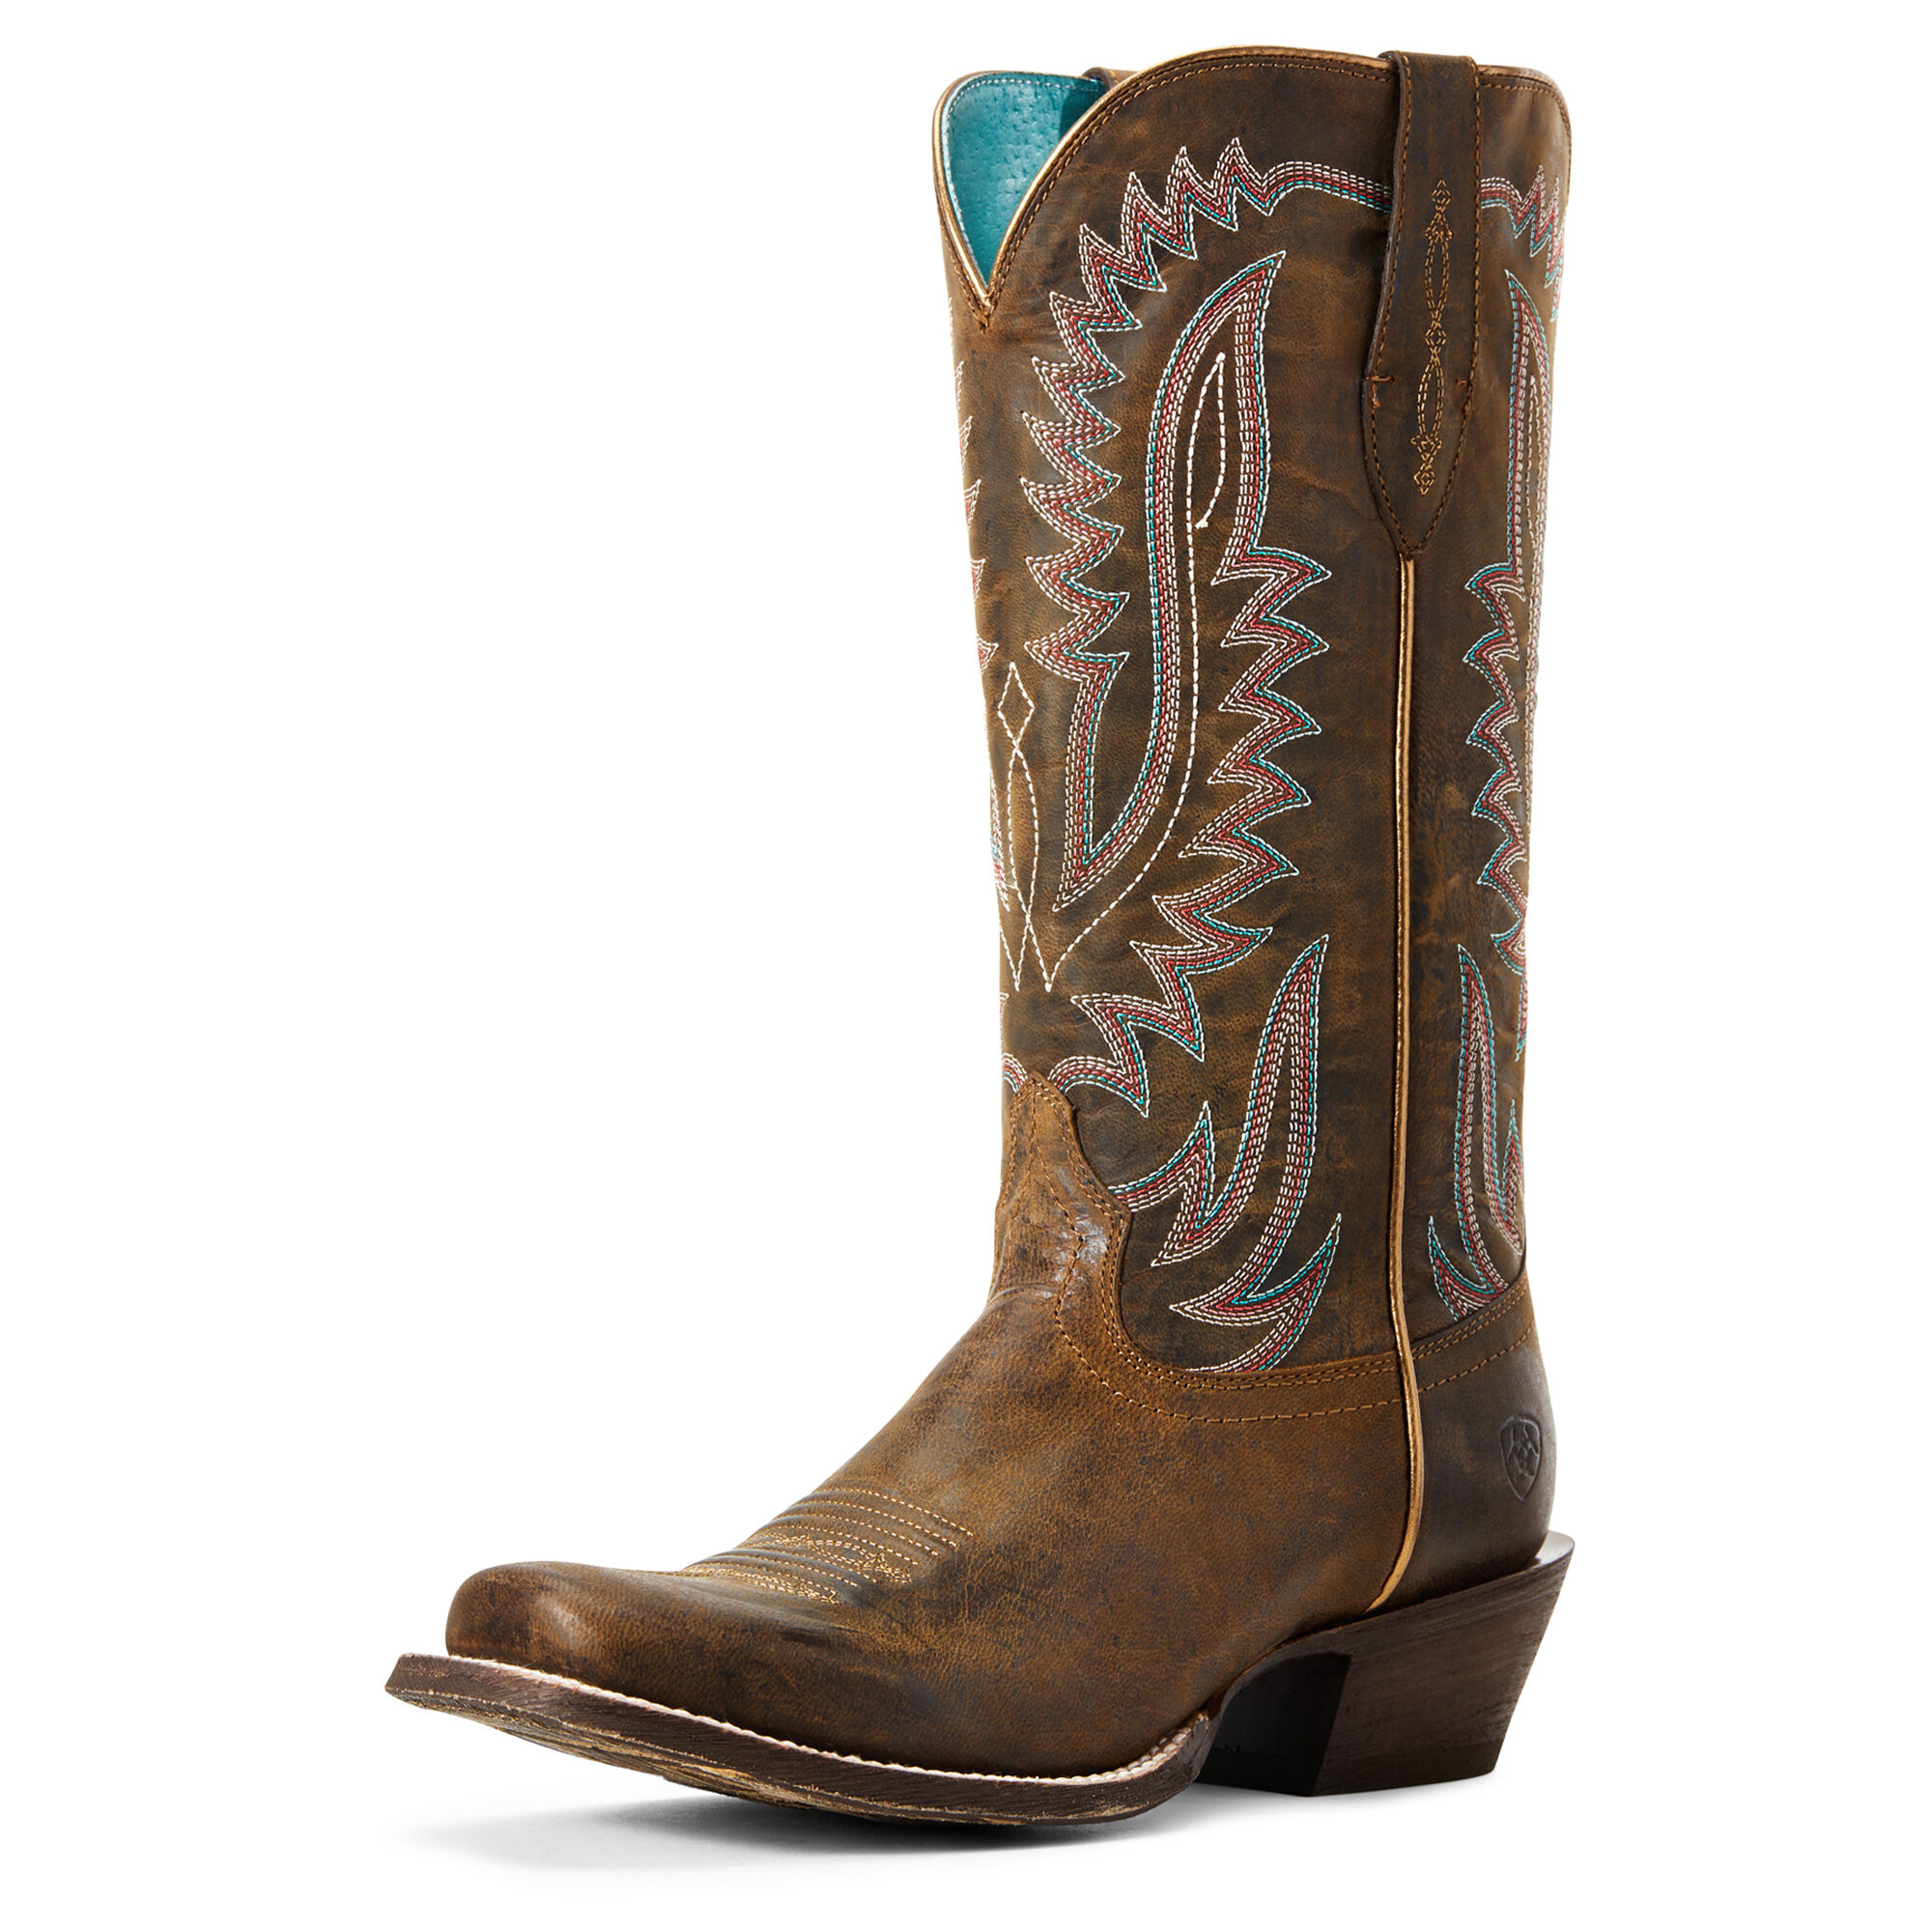 Women's Circuit Dakota Western Boots in Weathered Earth by Ariat